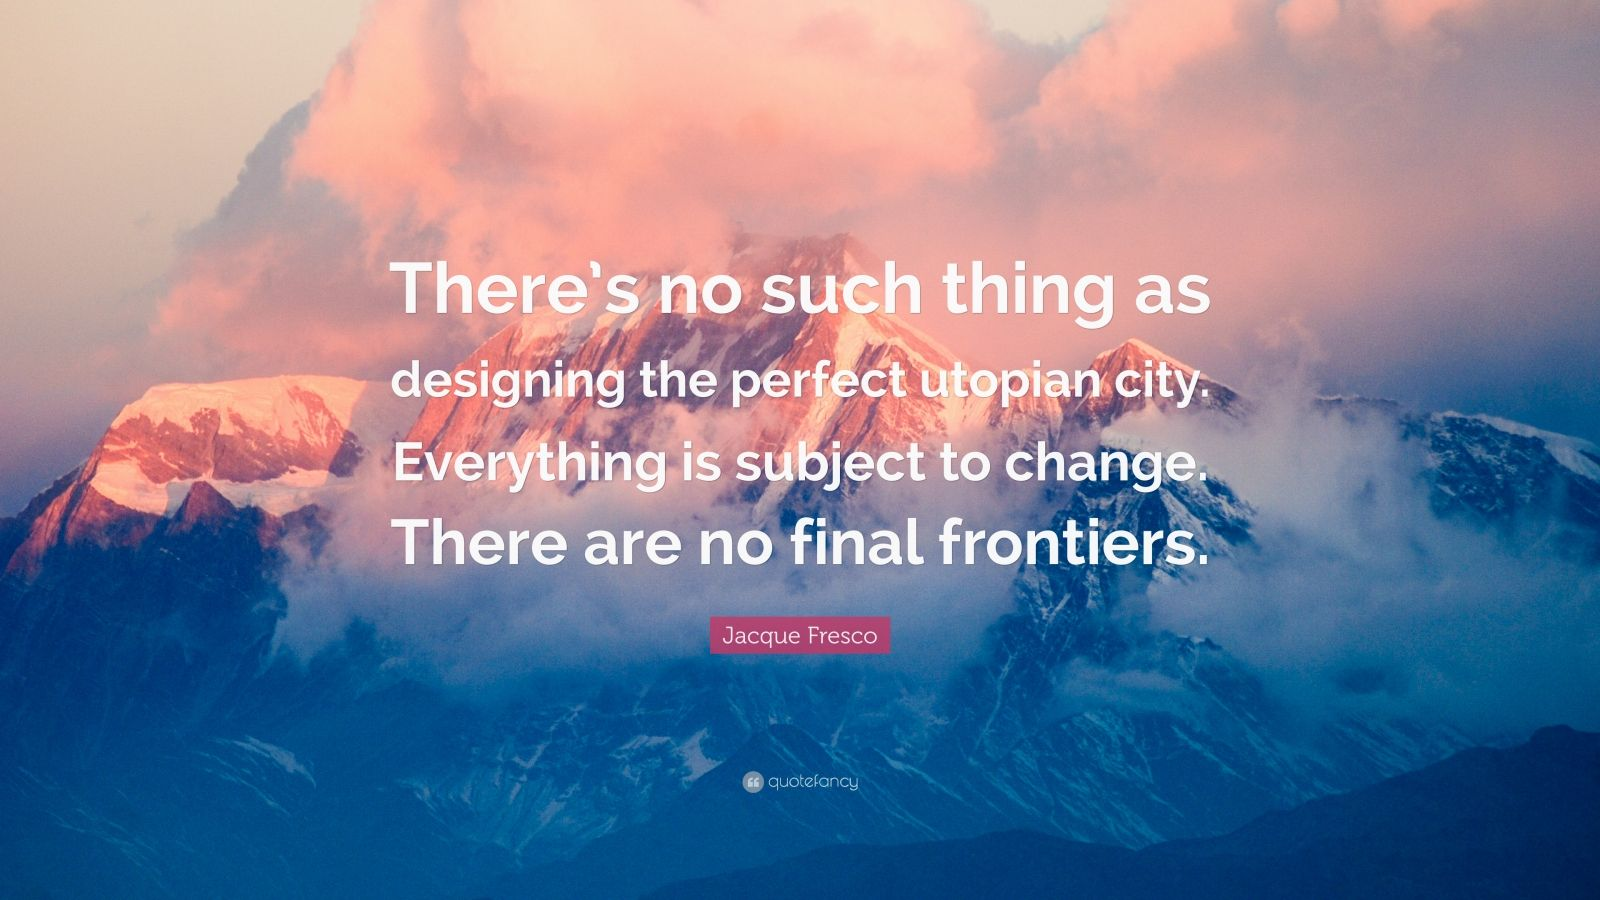 """Jacque Fresco Quote: """"There's no such thing as designing the perfect utopian city. Everything is subject to change. There are no final frontiers."""""""